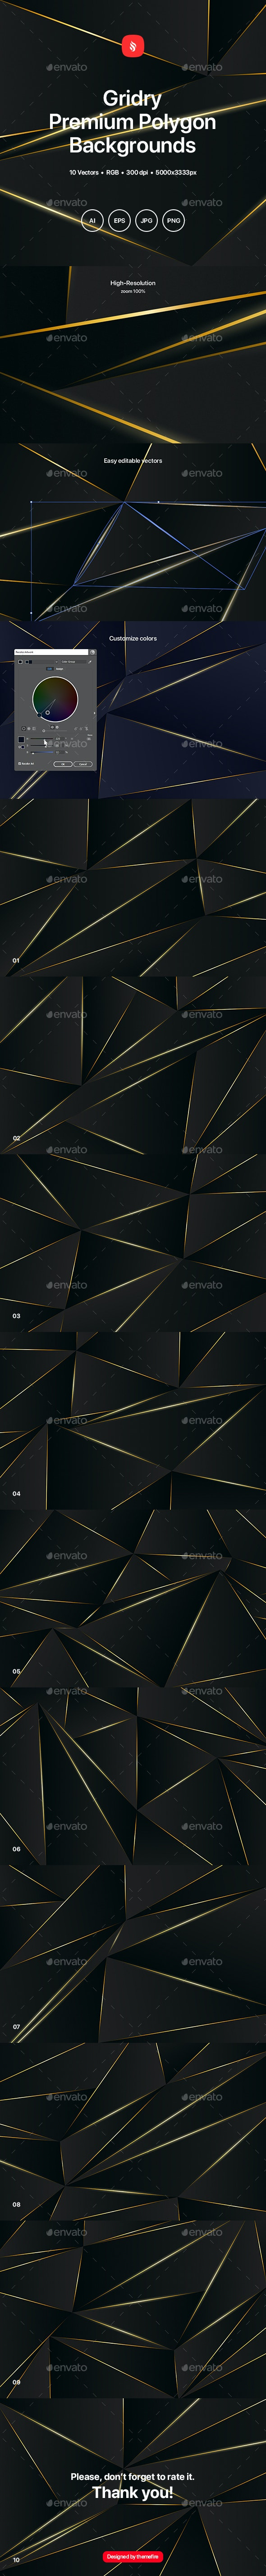 Gridry - Black Premium Polygon Backgrounds - Abstract Backgrounds